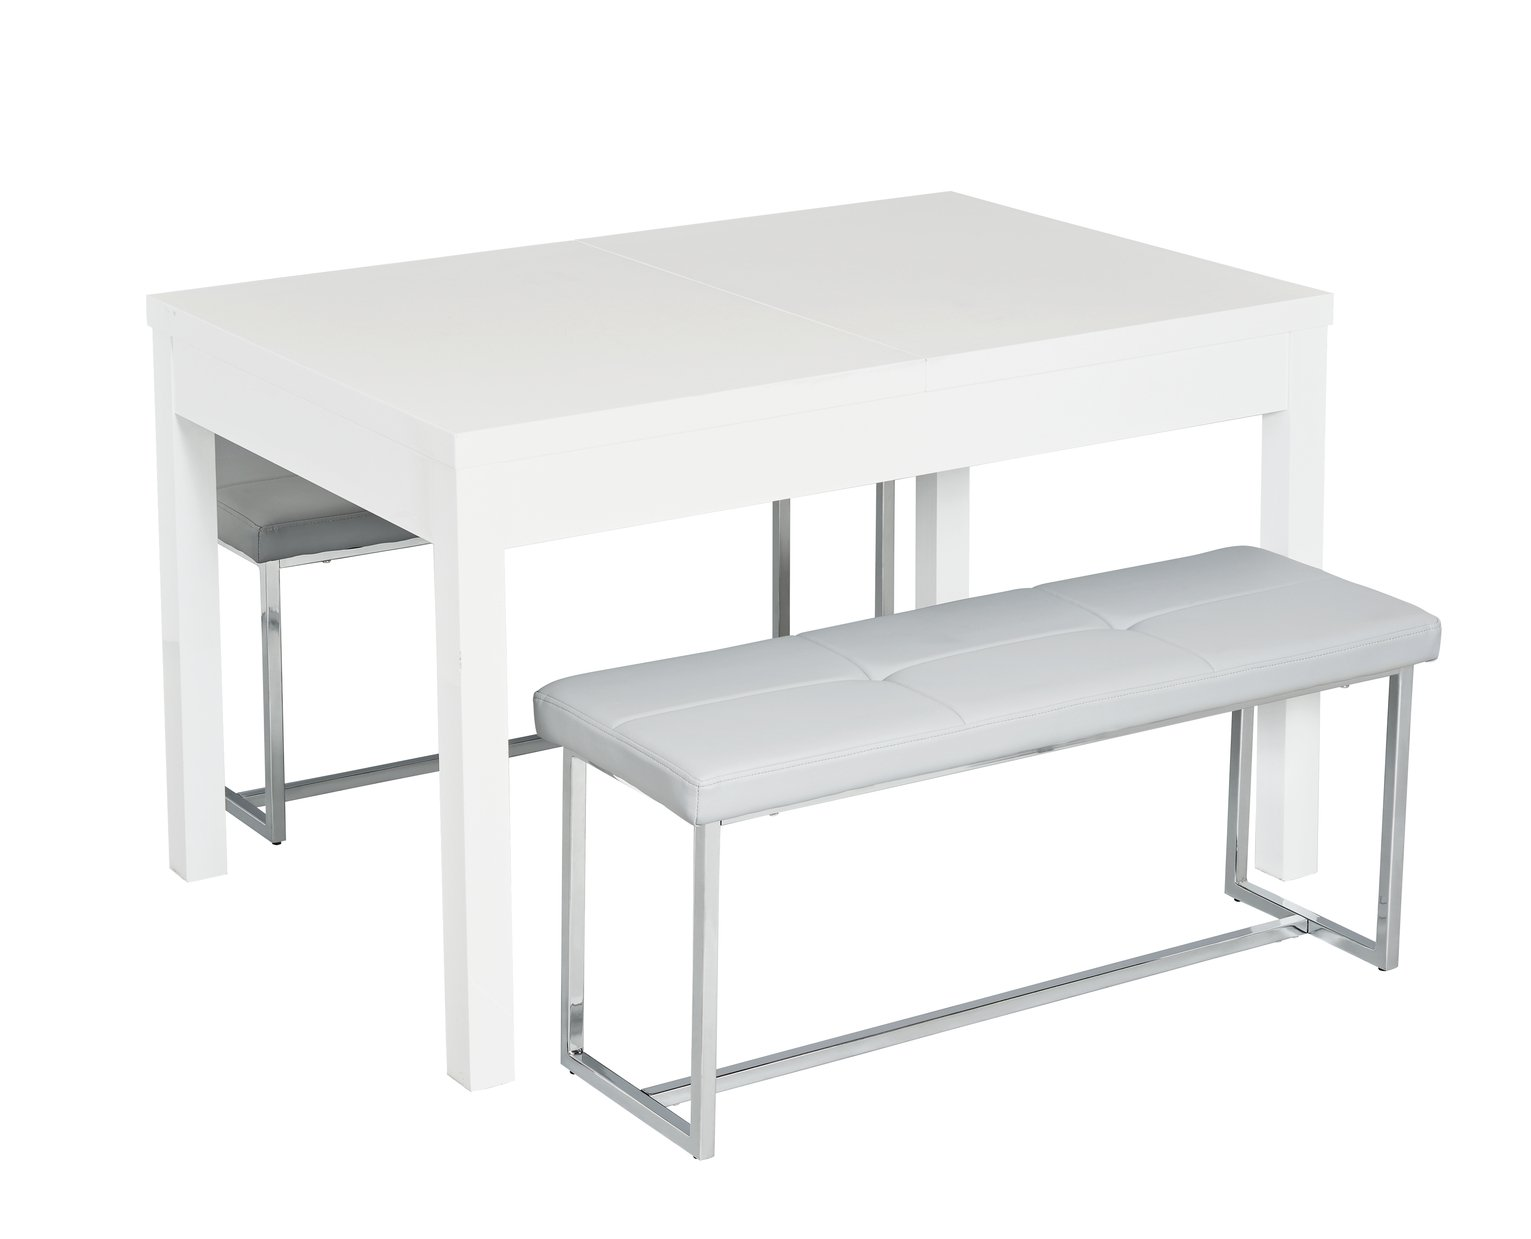 Argos Home Lyssa Wood Effect Extendable Table and Milo Benches at Argos review